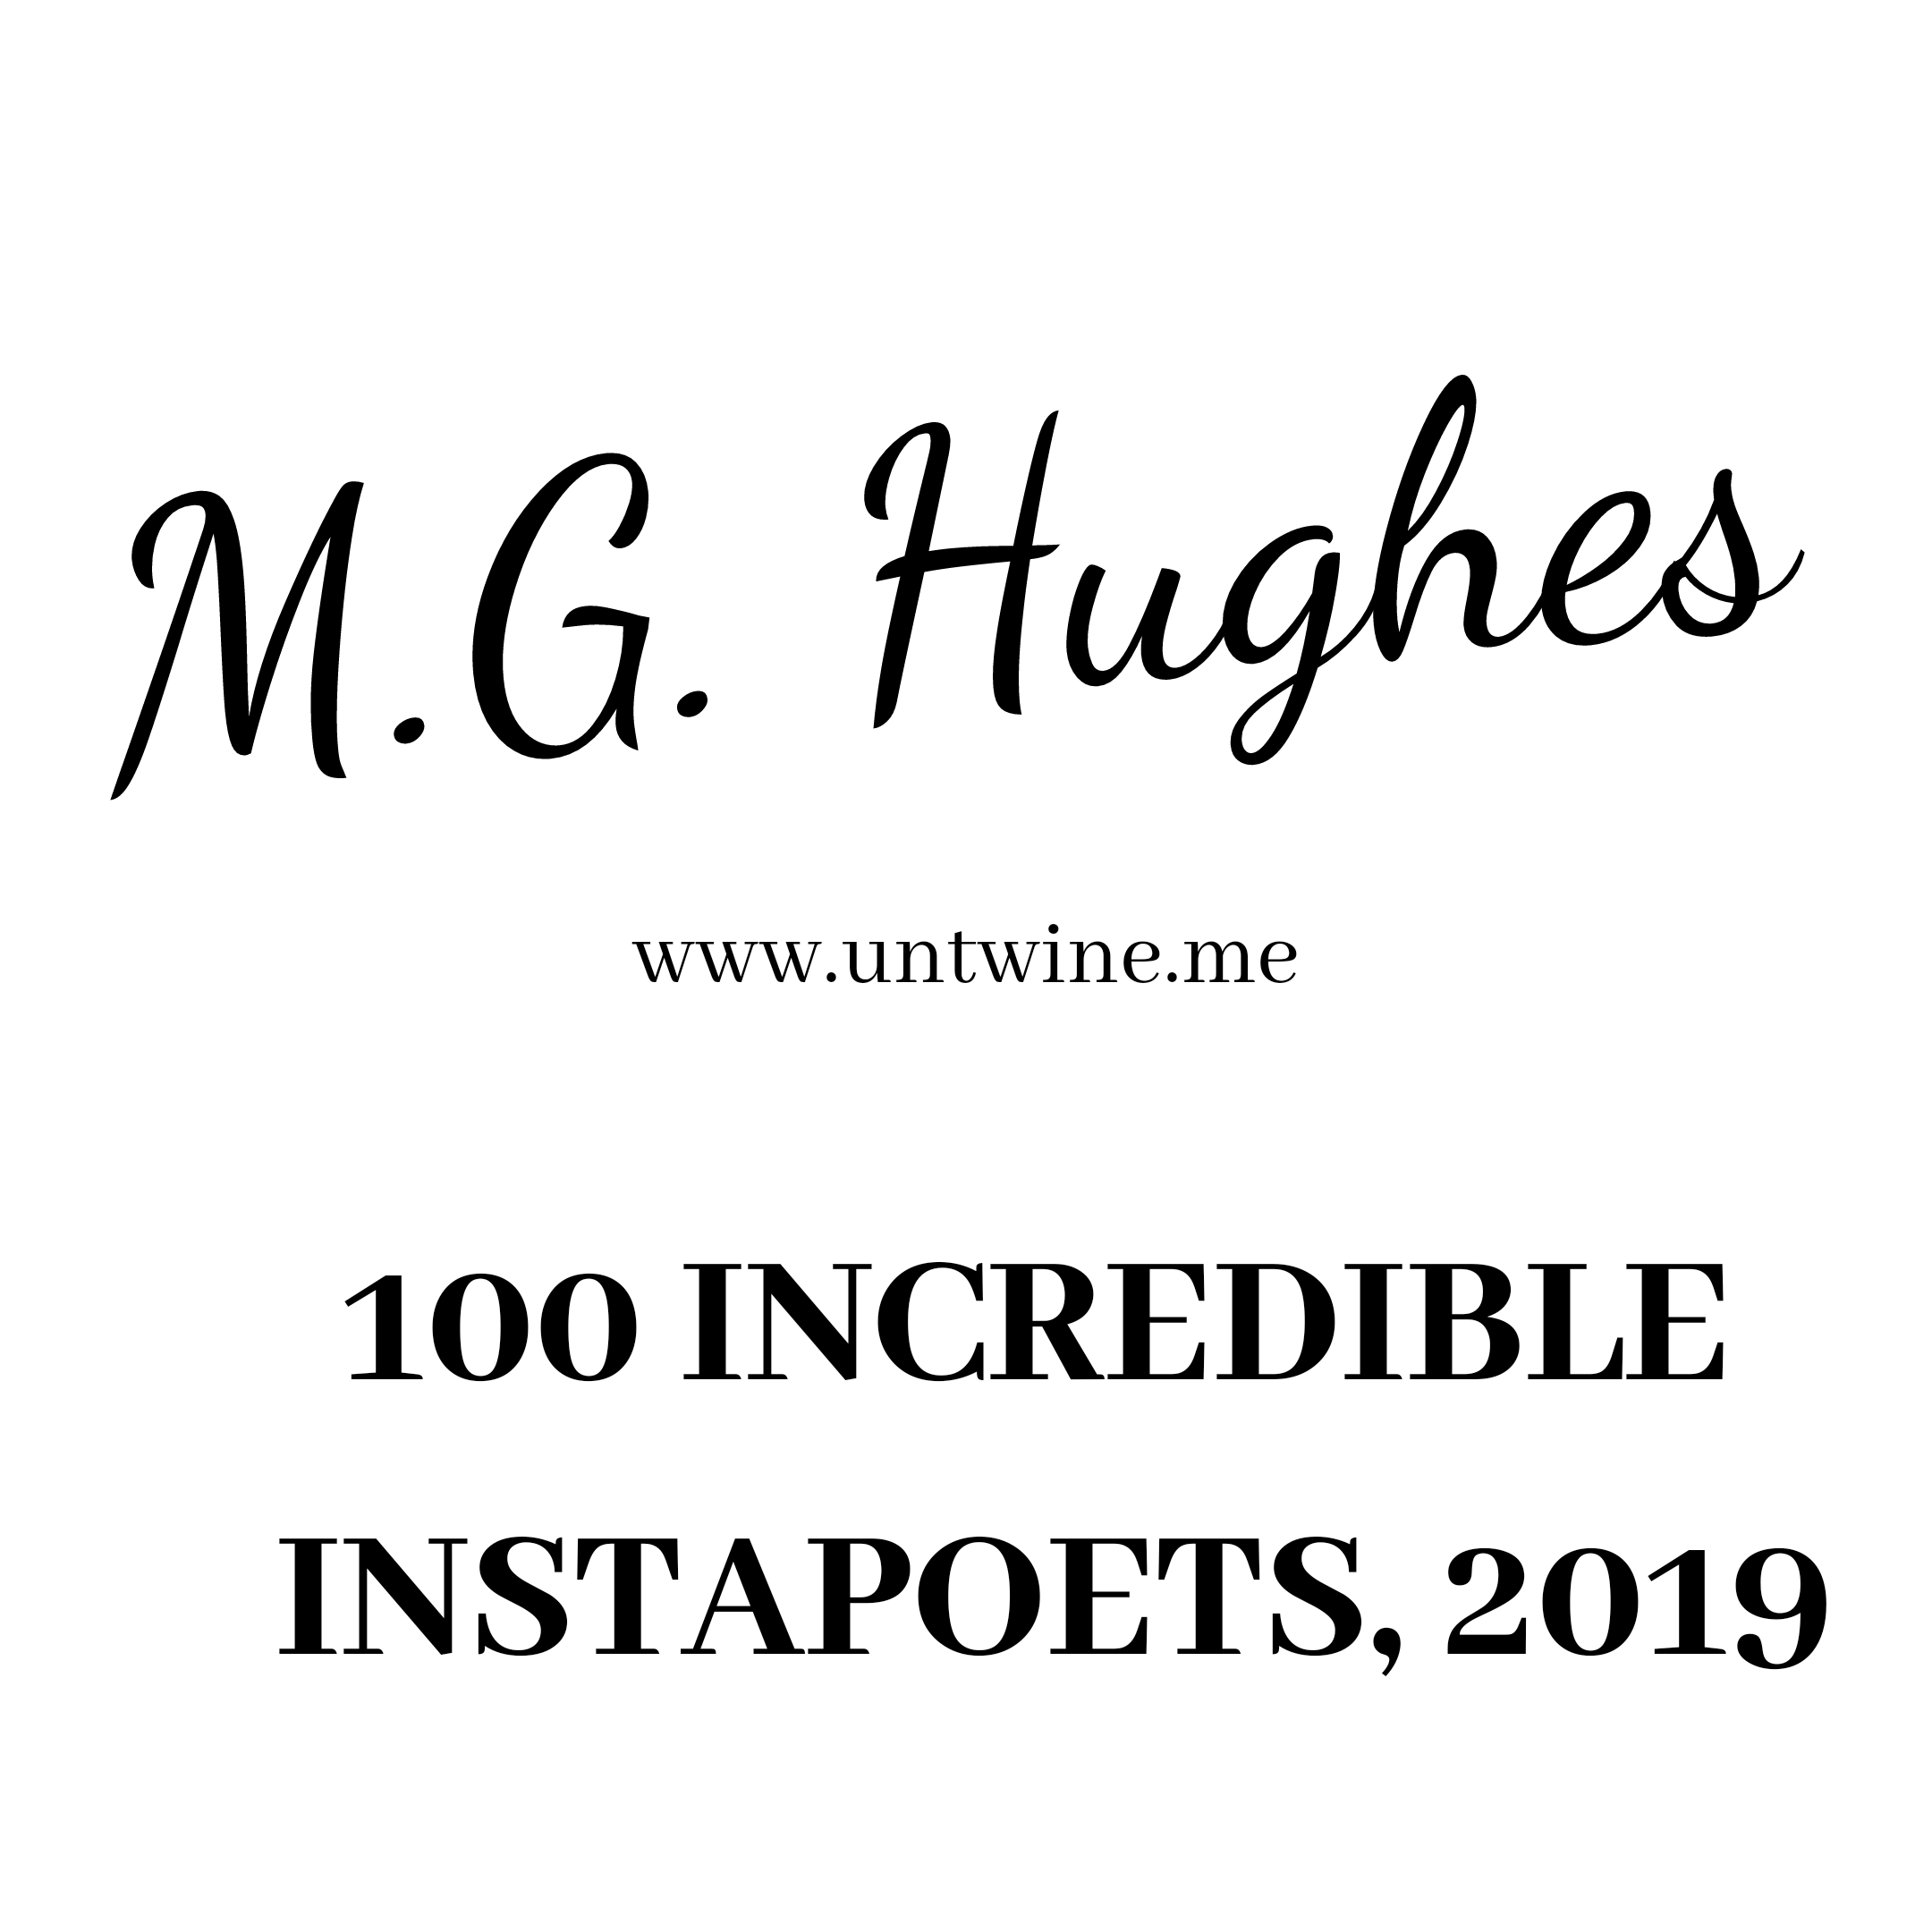 100 INCREDIBLE INSTAPOETS, 2019: M.G. HUGHES